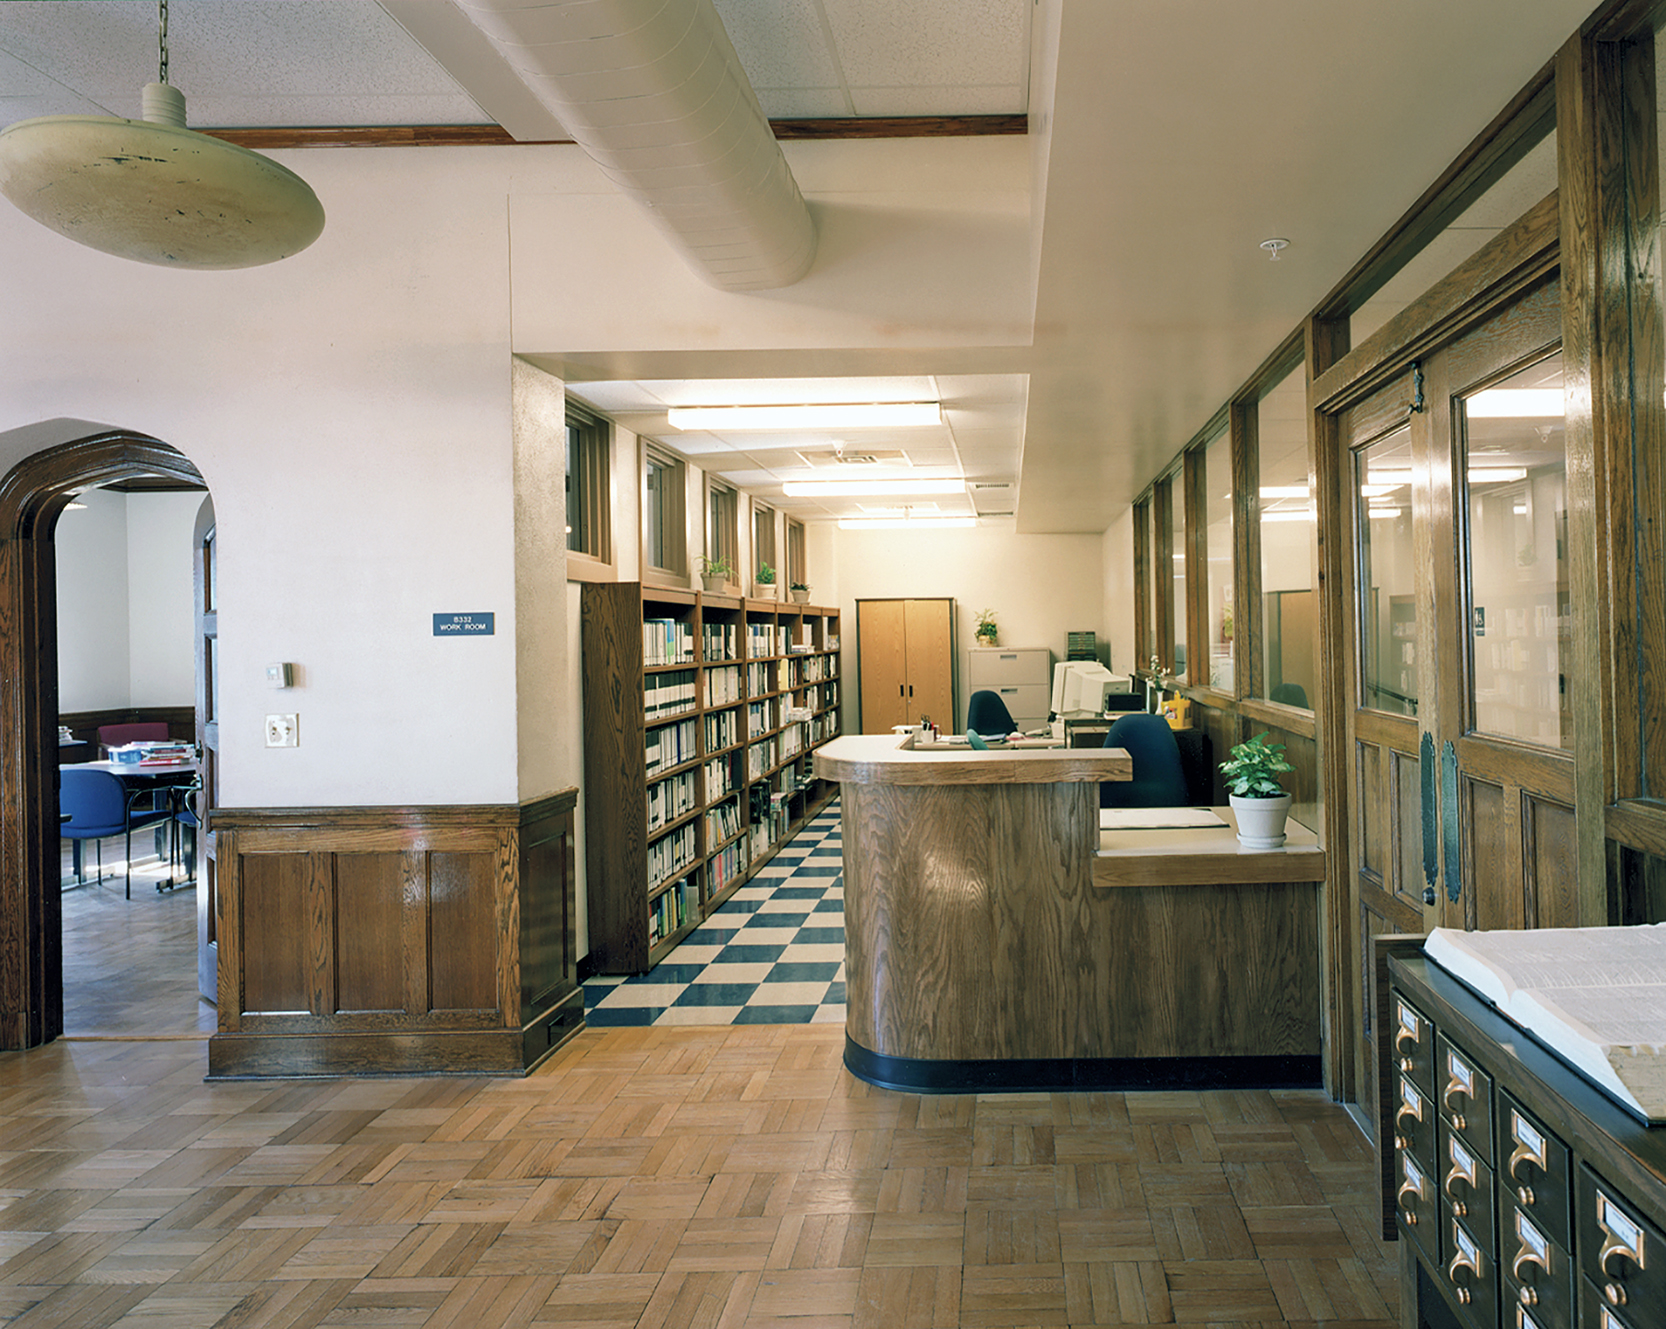 PDT was able to fit the MCJA media center into the school's old elegant library with new finishes. The antique light fixtures were reused.